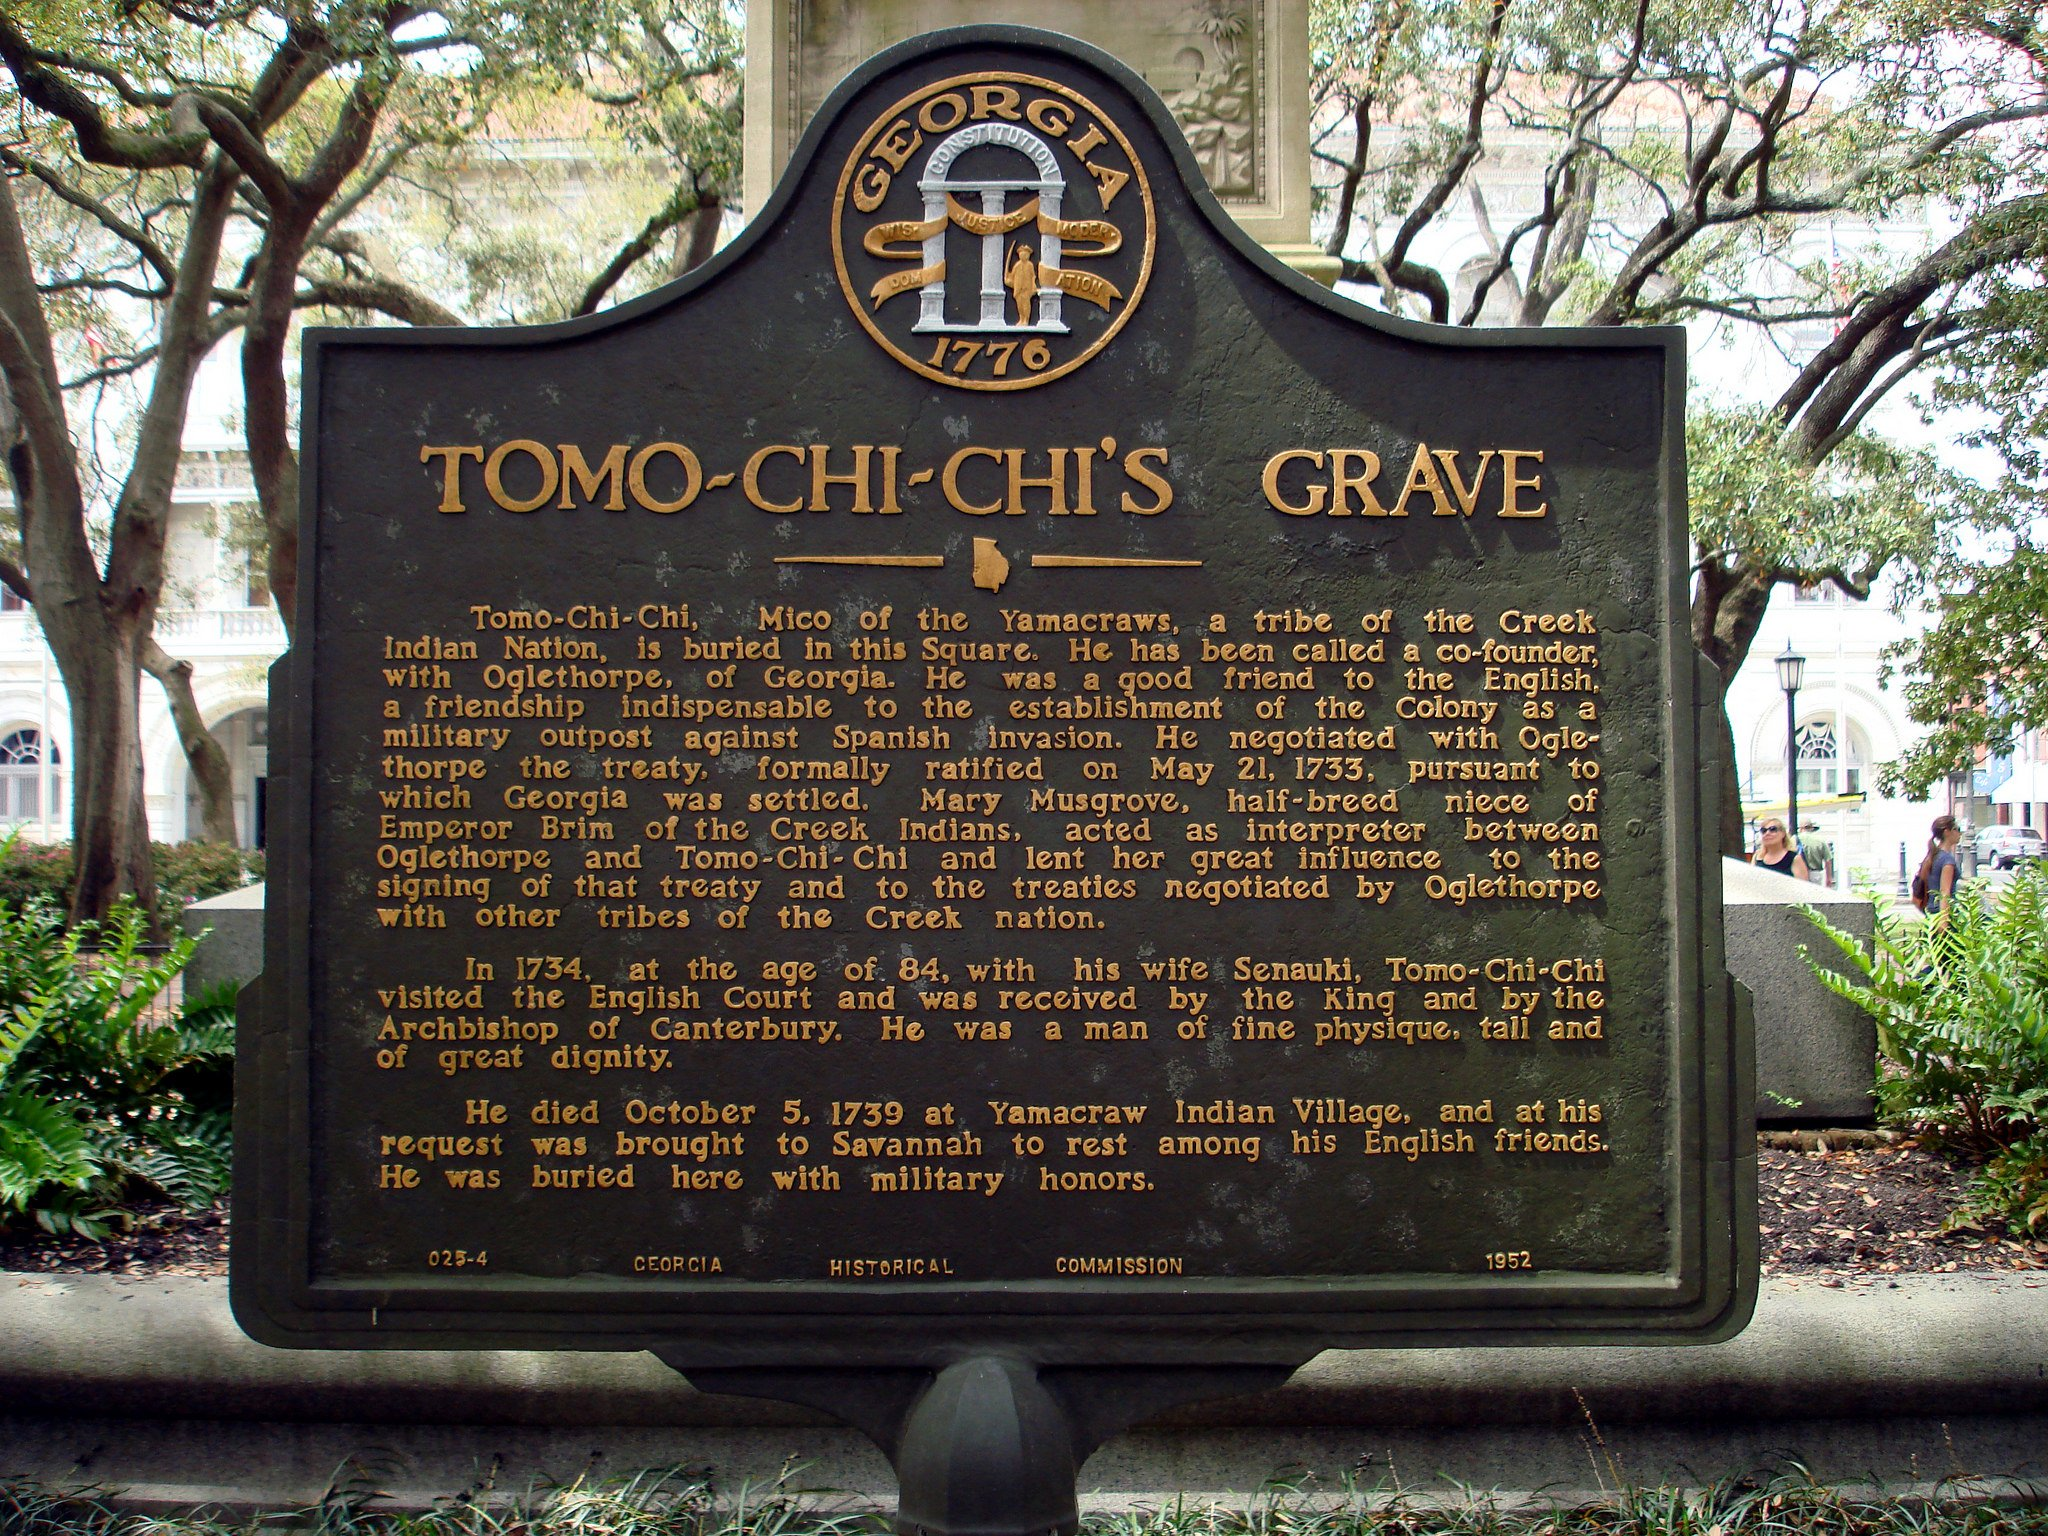 Tomo Chi-Chi's Grave Marker in Wright Square. Photo taken by Michael Karl Witzel. Retrieved From https://www.flickr.com/photos/michaelwitzel/43028443055/in/photostream/